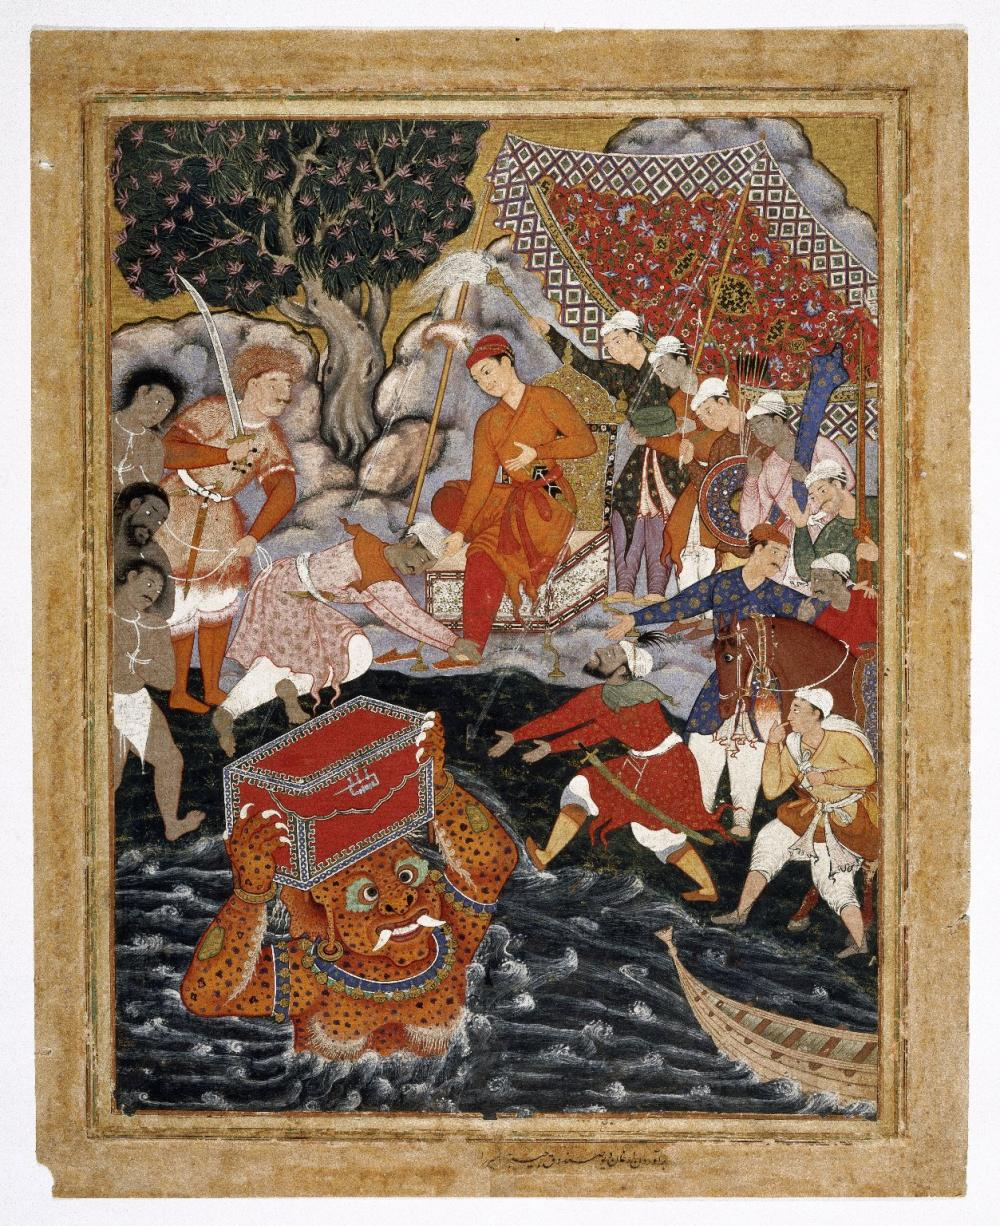 intricate indian painting featuring narrative story